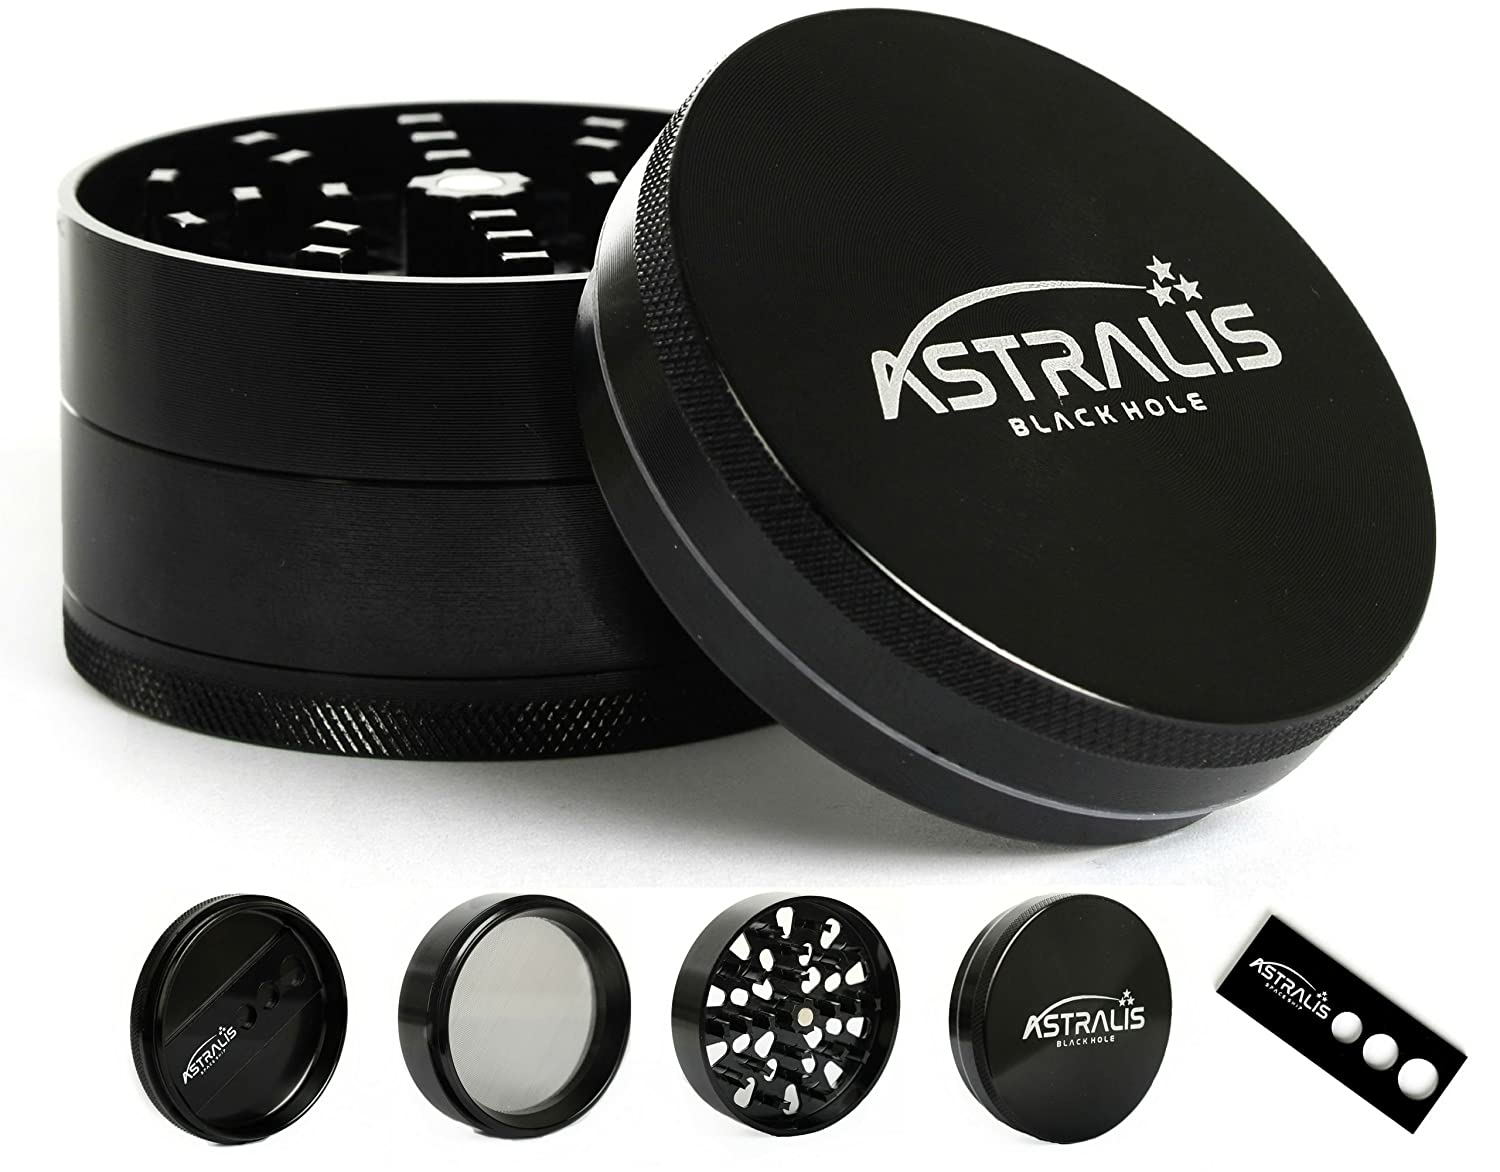 """High-end Grinder """"Black Hole"""" by ASTRALIS - Sharp crusher grinds herbs like a beast - Innovative """"Space Ship"""" included 